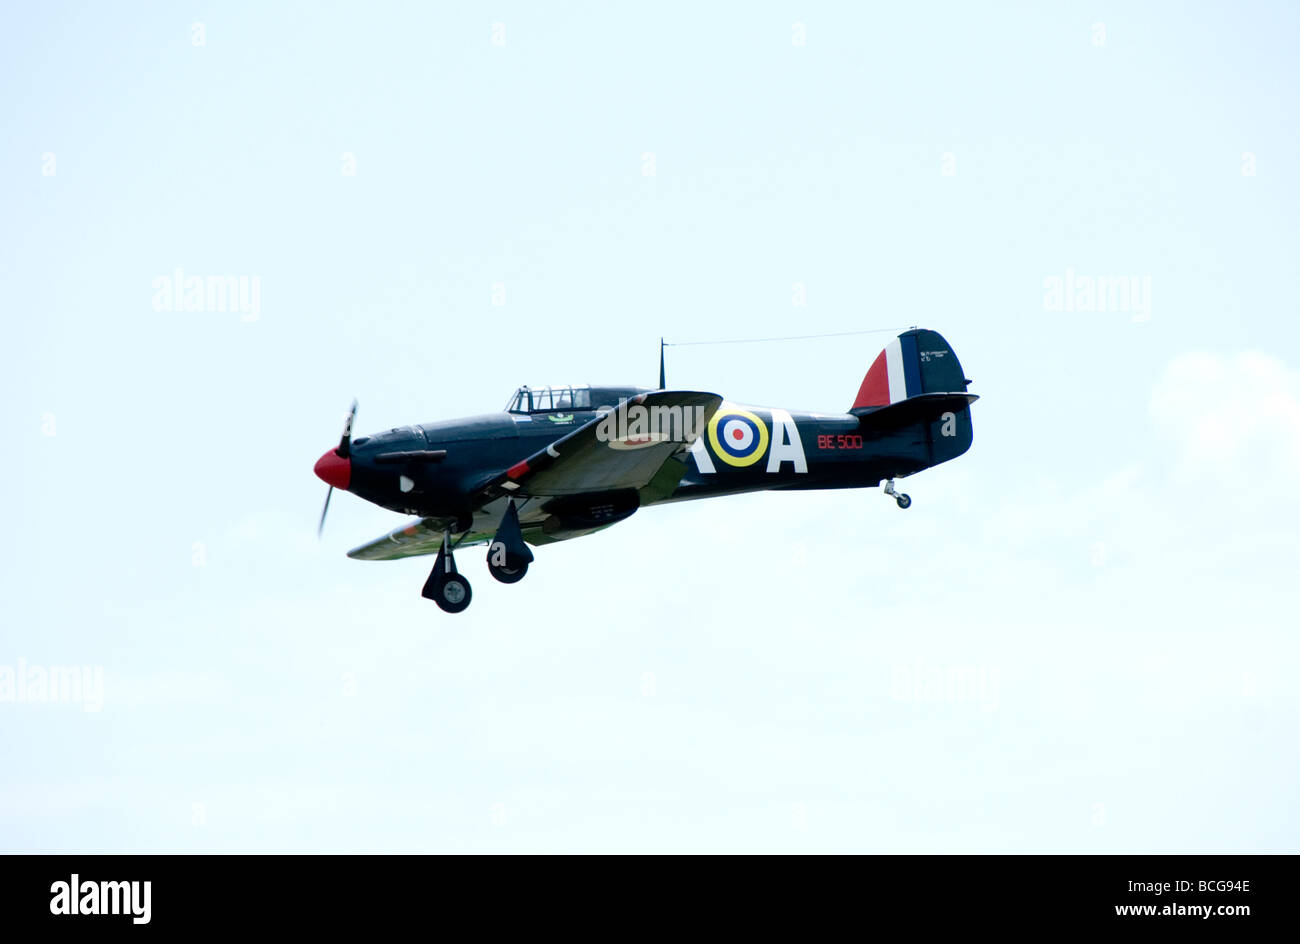 A model Hurricane in flight at an airshow in France - Stock Image